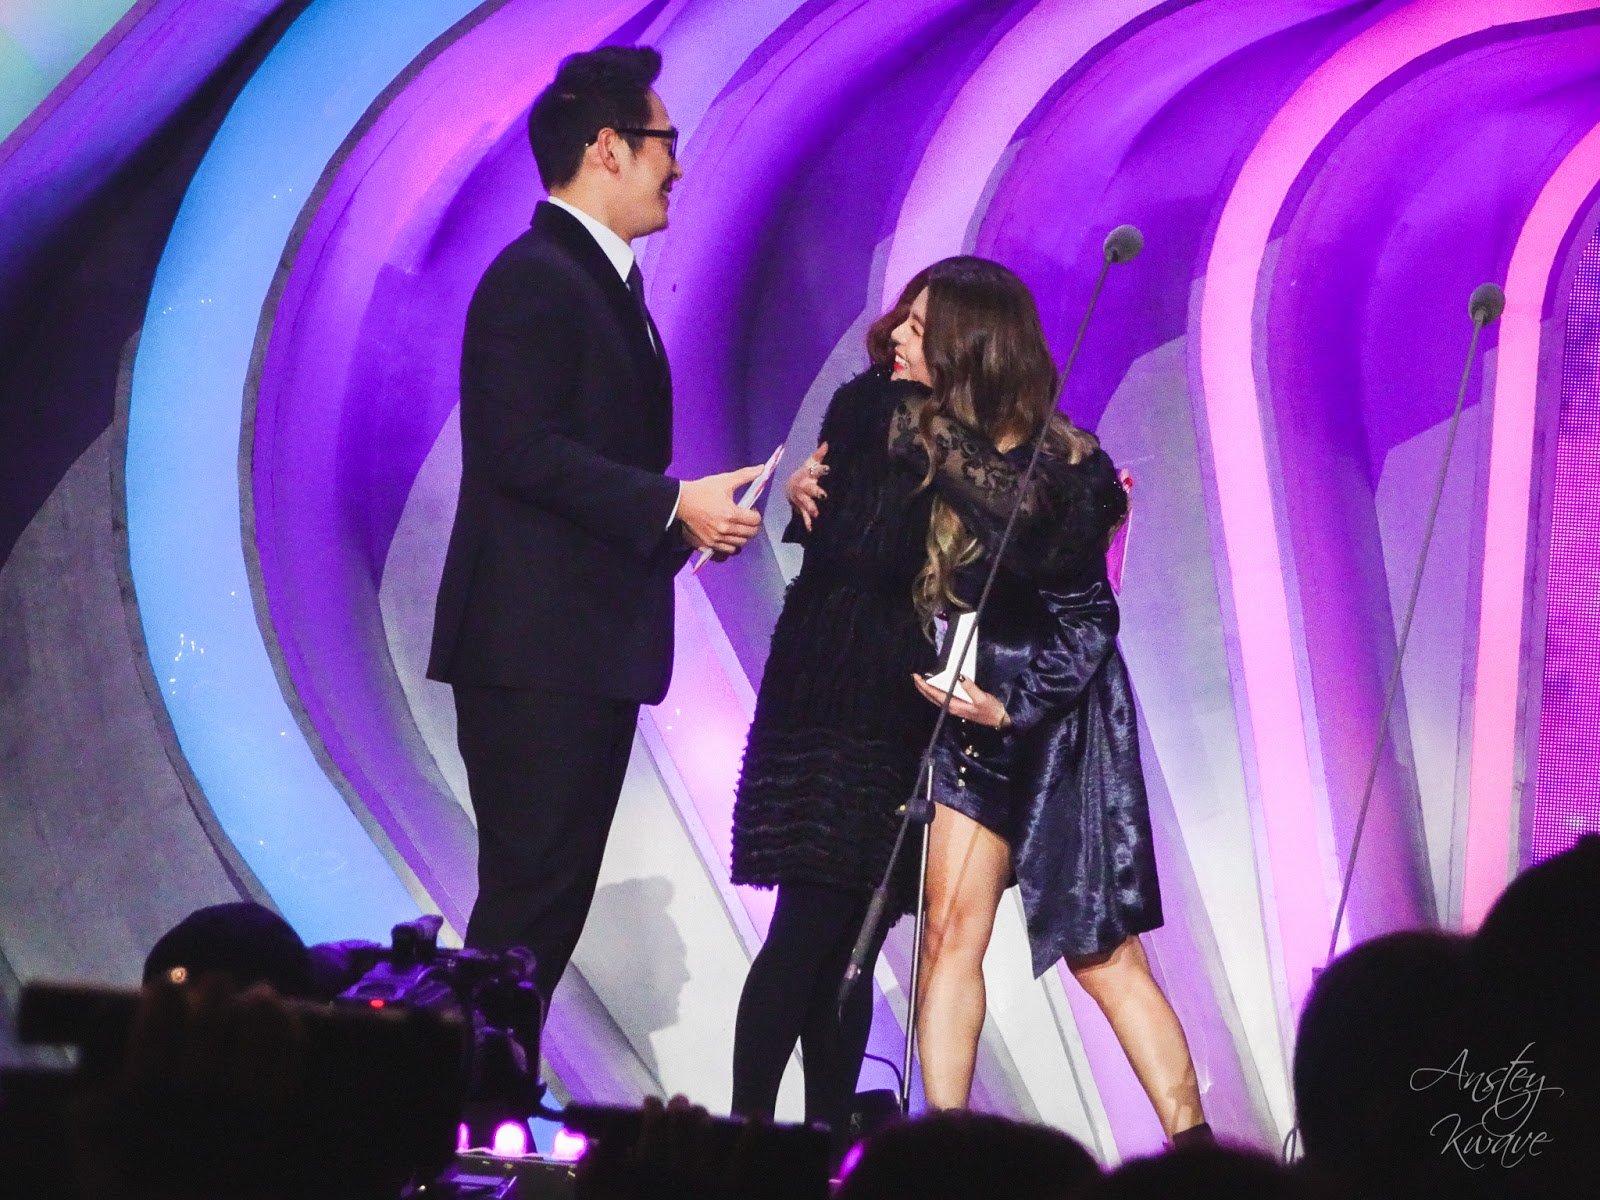 Ailee famous Korean k-pop singer receiving award on stage at Melon Music Awards (MMA) 2017 in Seoul, South Korea